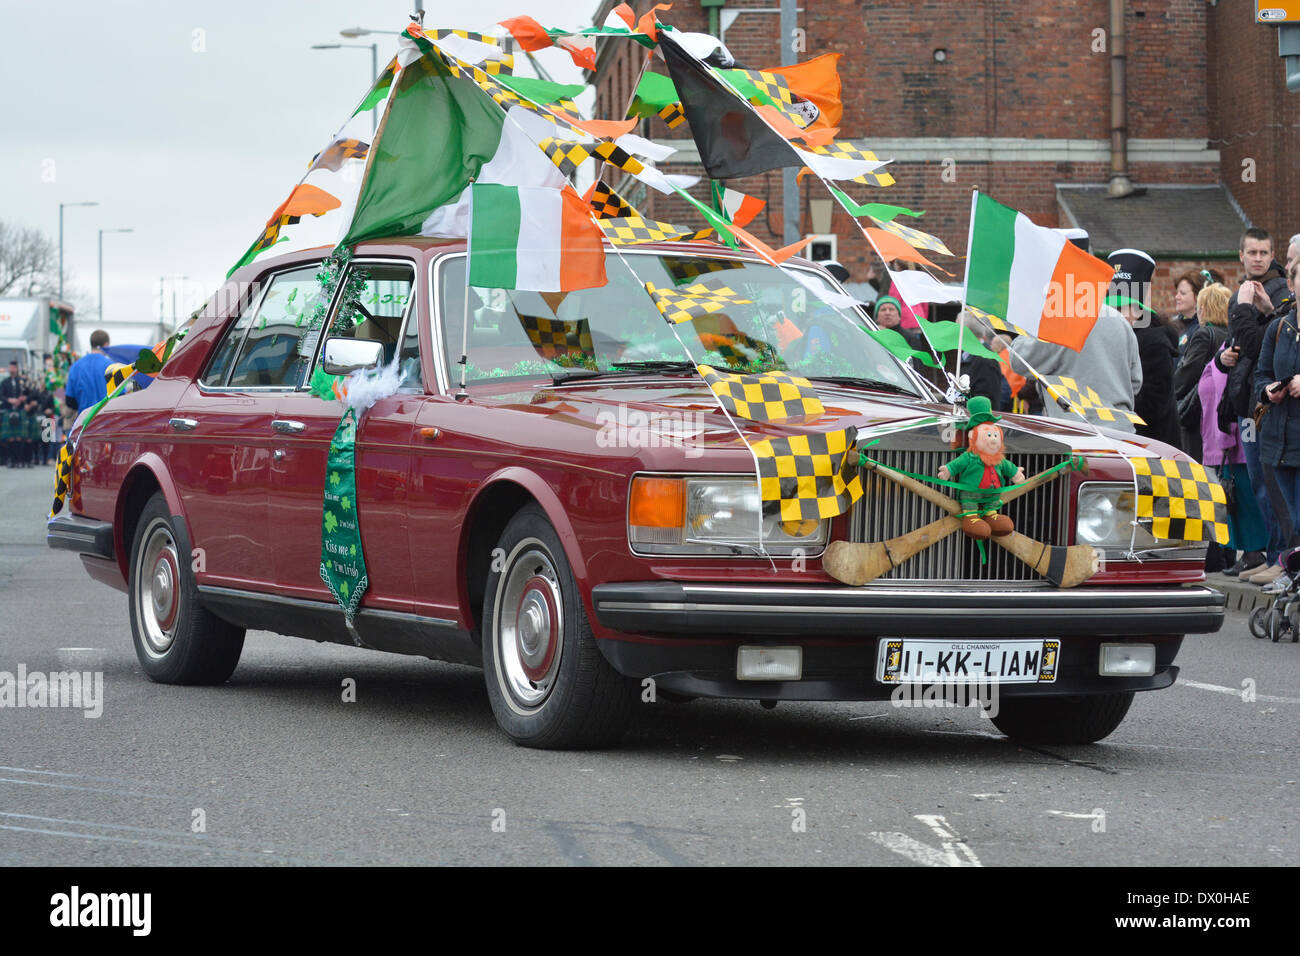 Manchester Uk 16th March 2014 A Rolls Royce Car Decorated In Irish